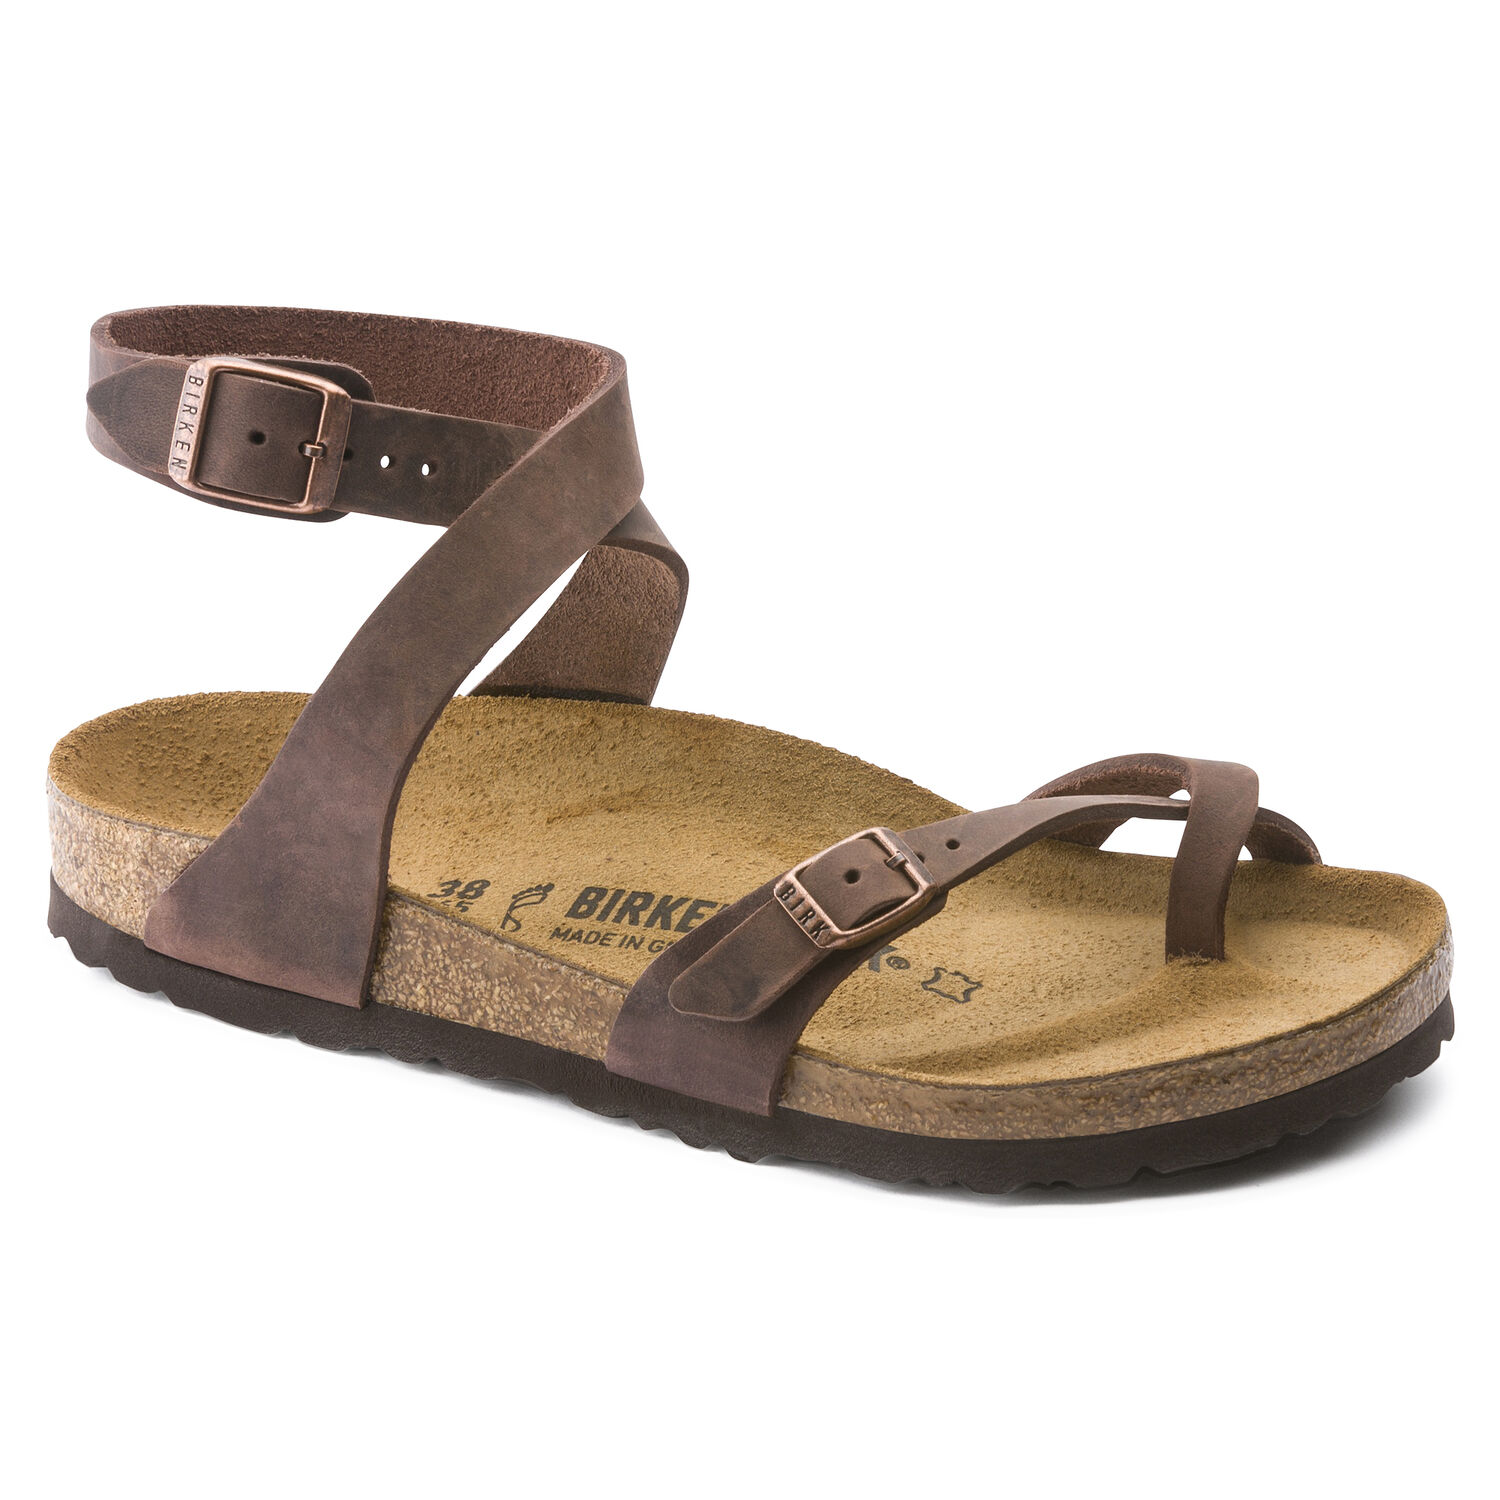 5914cce7c9a8 Yara Oiled Leather | shop online at BIRKENSTOCK